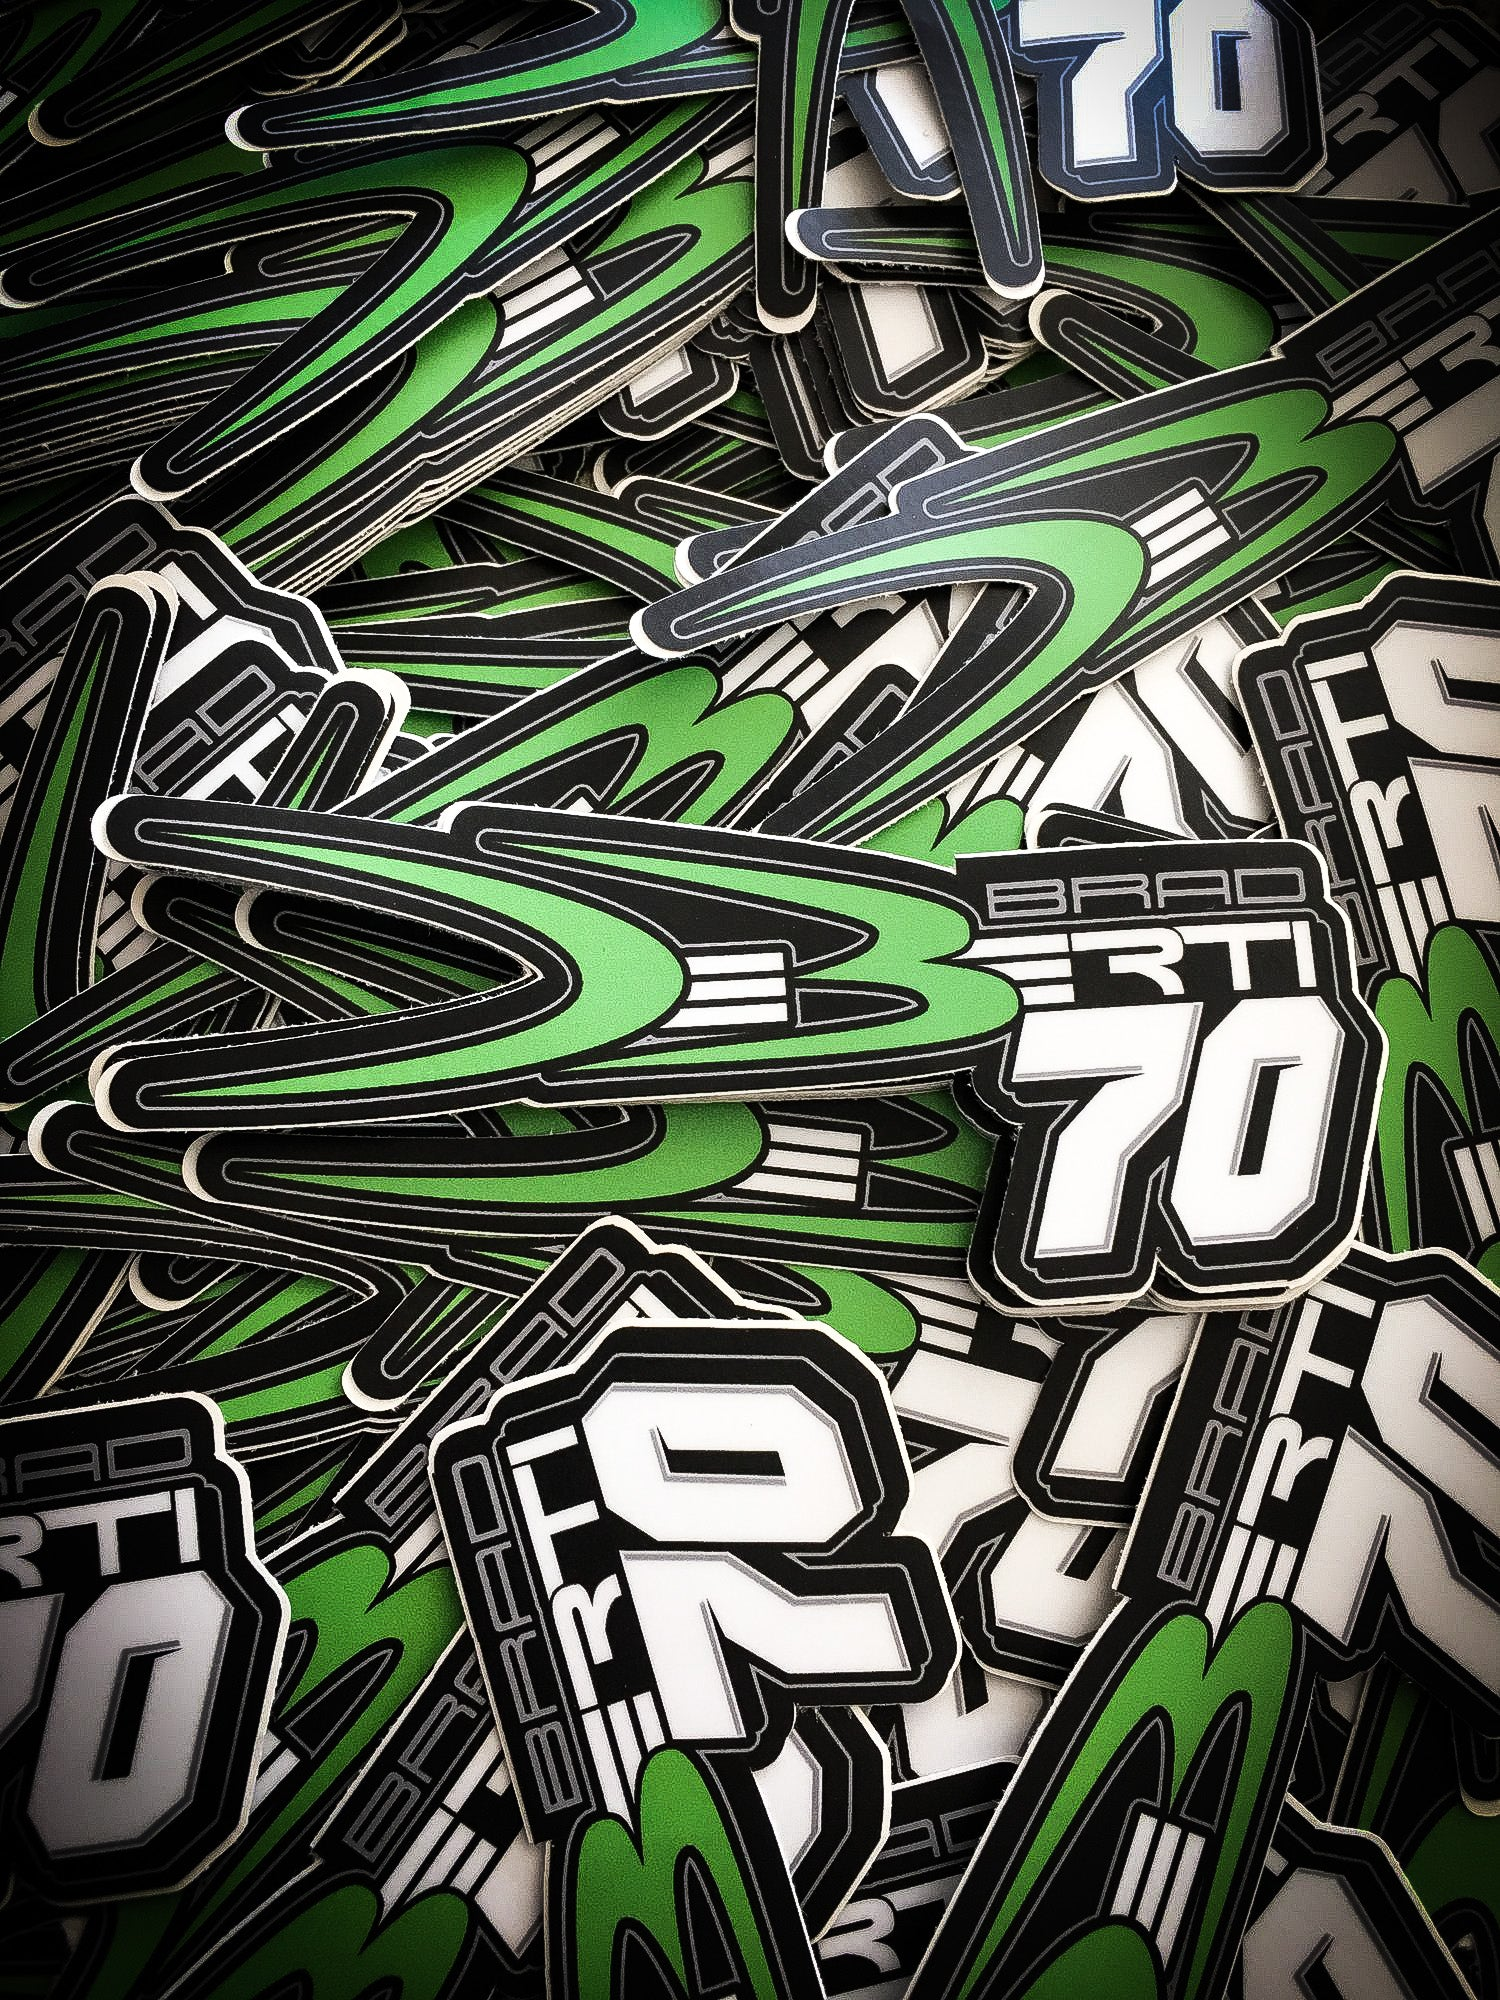 Slap these bad boys anywhere you want! Classic DeBerti green logo and Brad DeBerti's signature no. 70